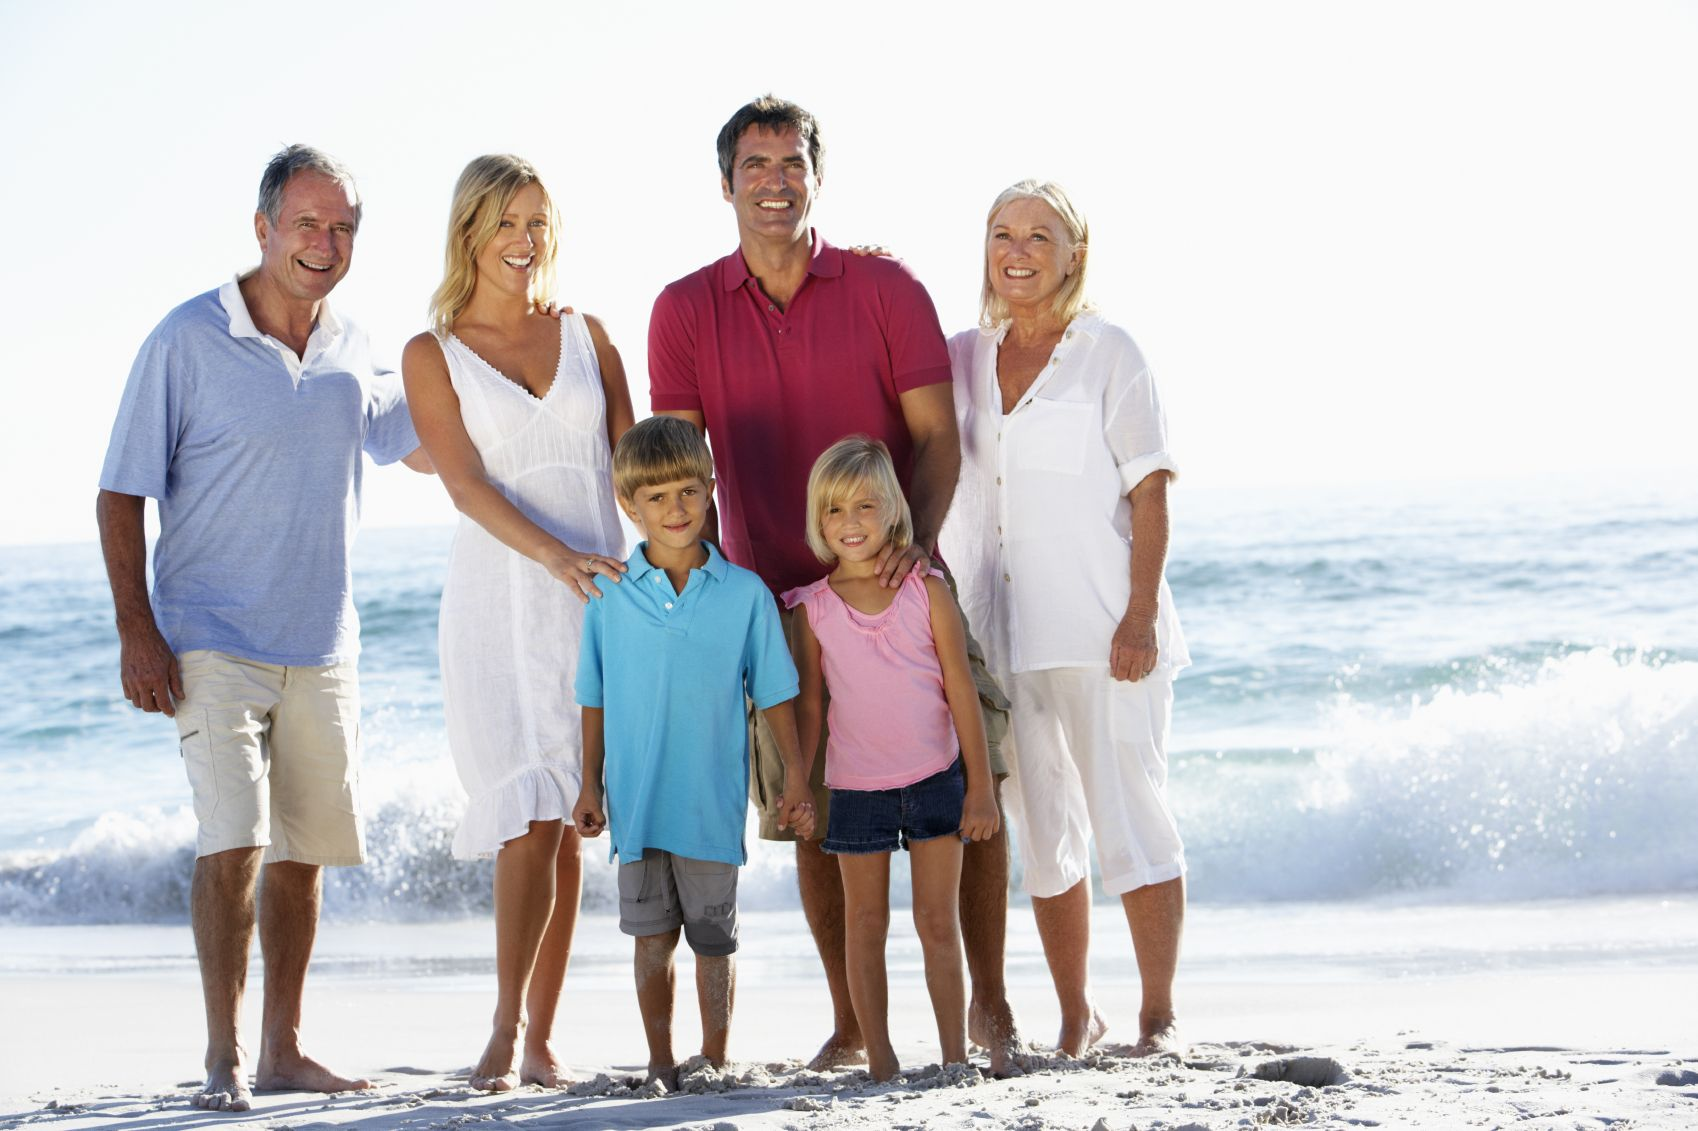 Sandbridge is a great place to celebrate what life is all about!  Family!